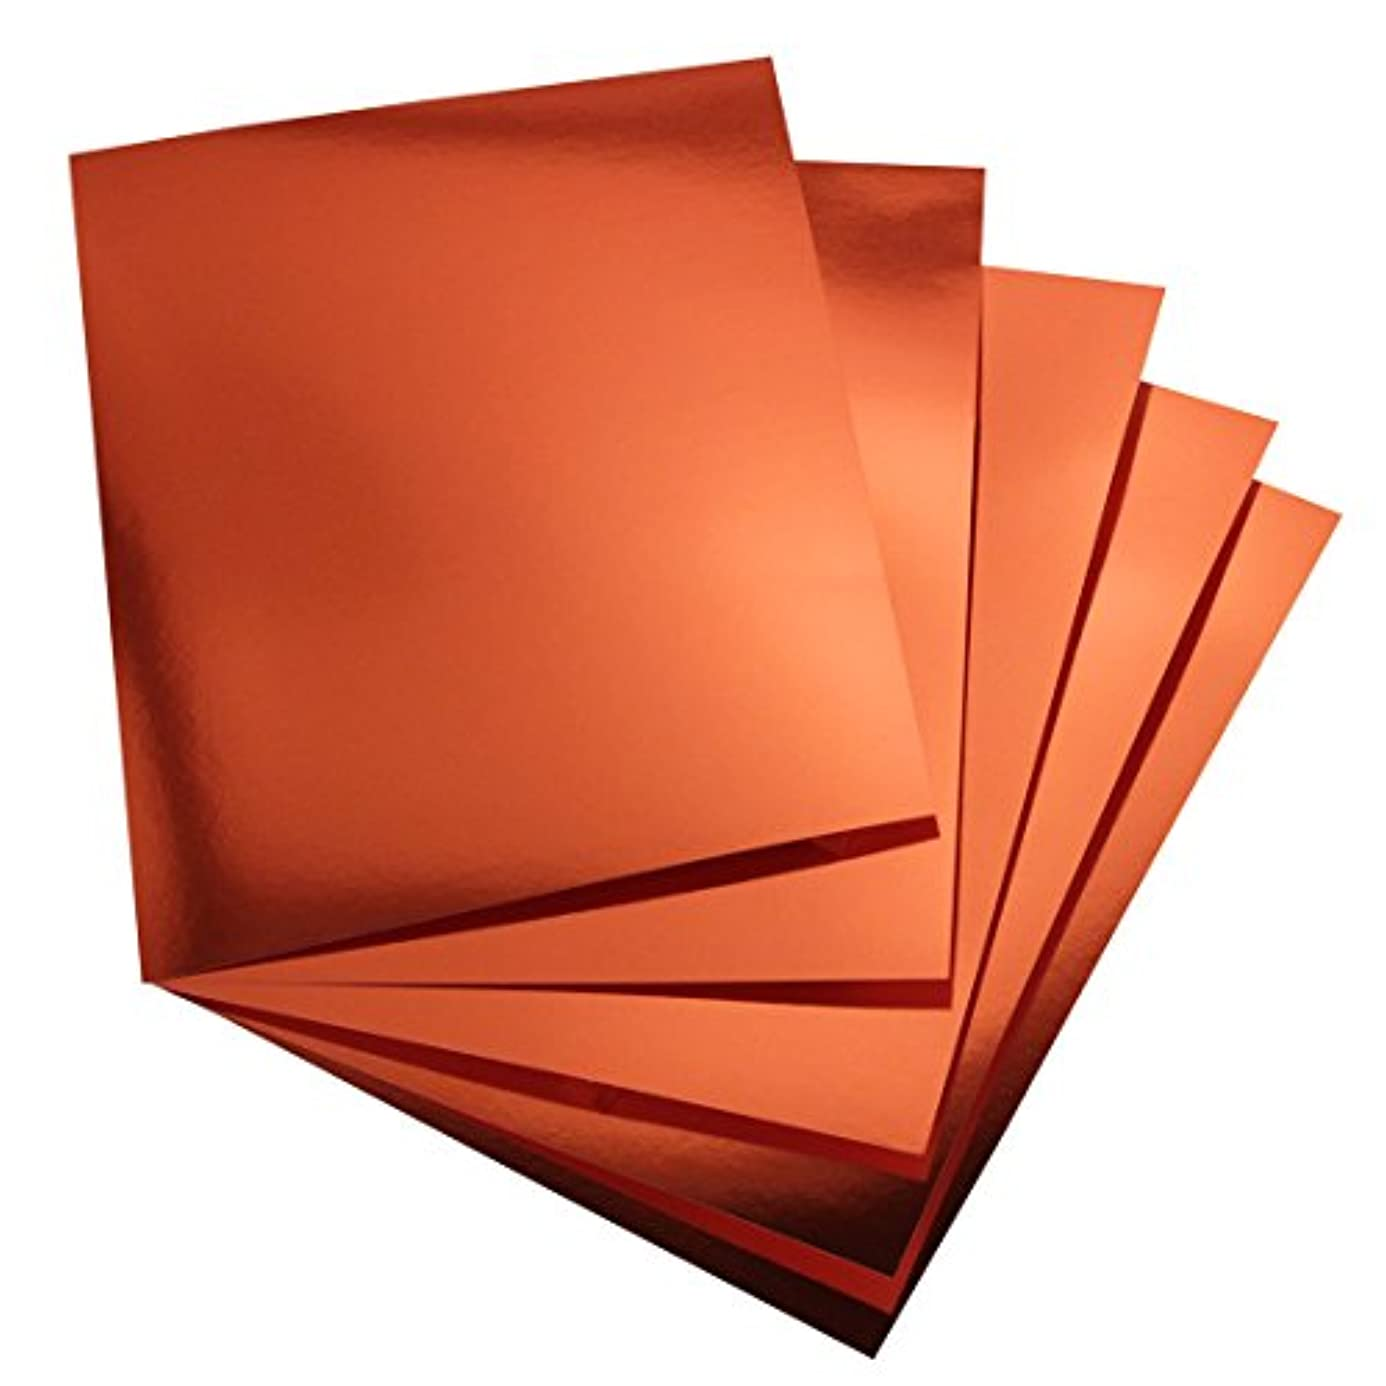 Hygloss Products Metallic Foil Board Sheets - 8.5 x 11 Inches – Red Copper, 25 Pack bsm4332079